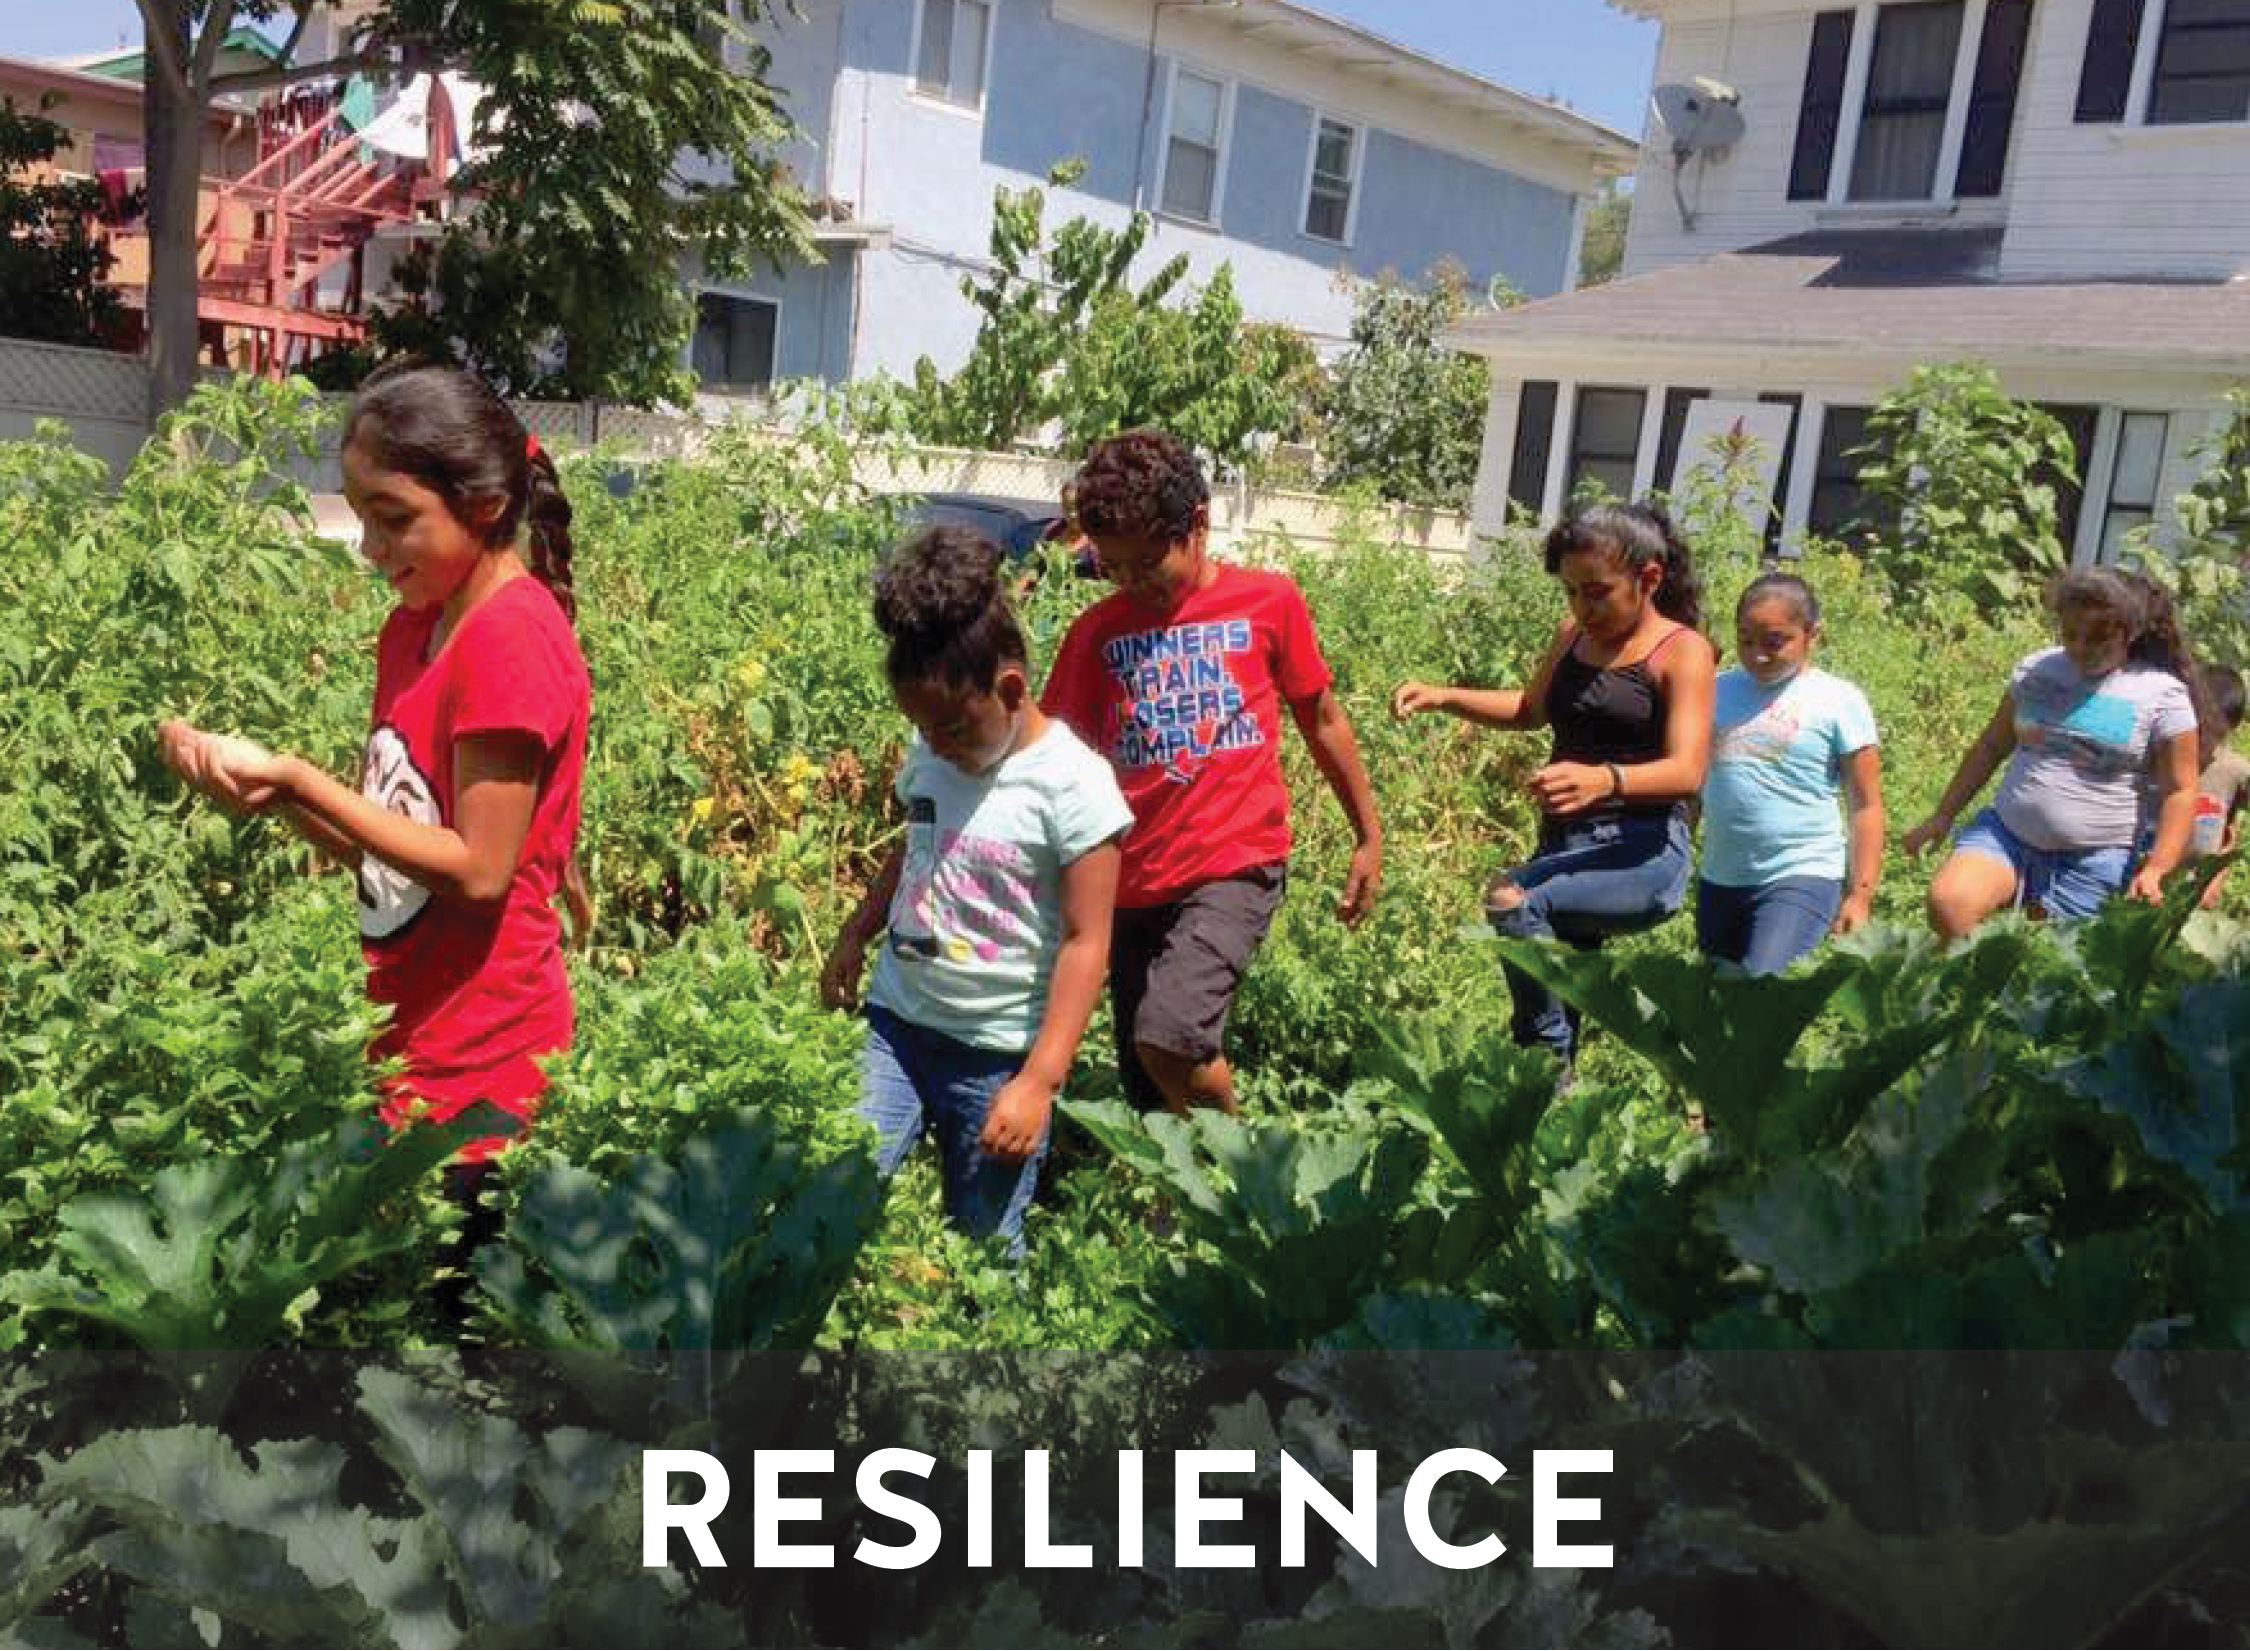 RESILIENCE   Resilient communities are built by connected and engaged people. Our youth-developed programs help youth find their interests while giving them the tools and skills to make the changes they want to see in their communities.